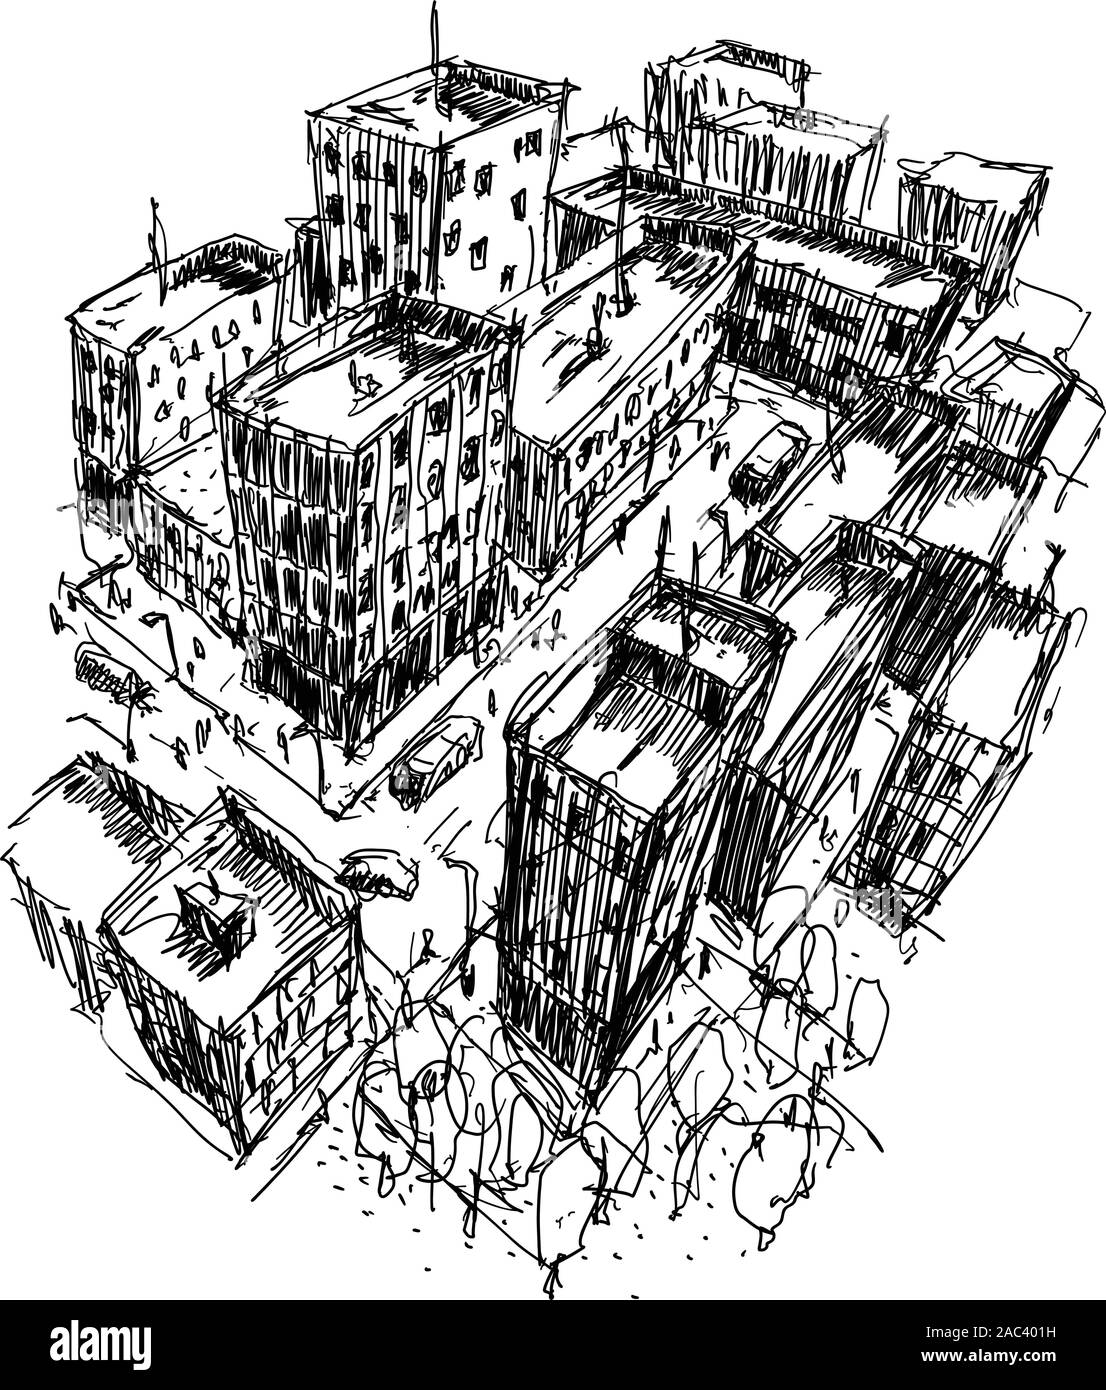 hand drawn architectural sketch of a modern city with high buildings and people in the streets Stock Vector